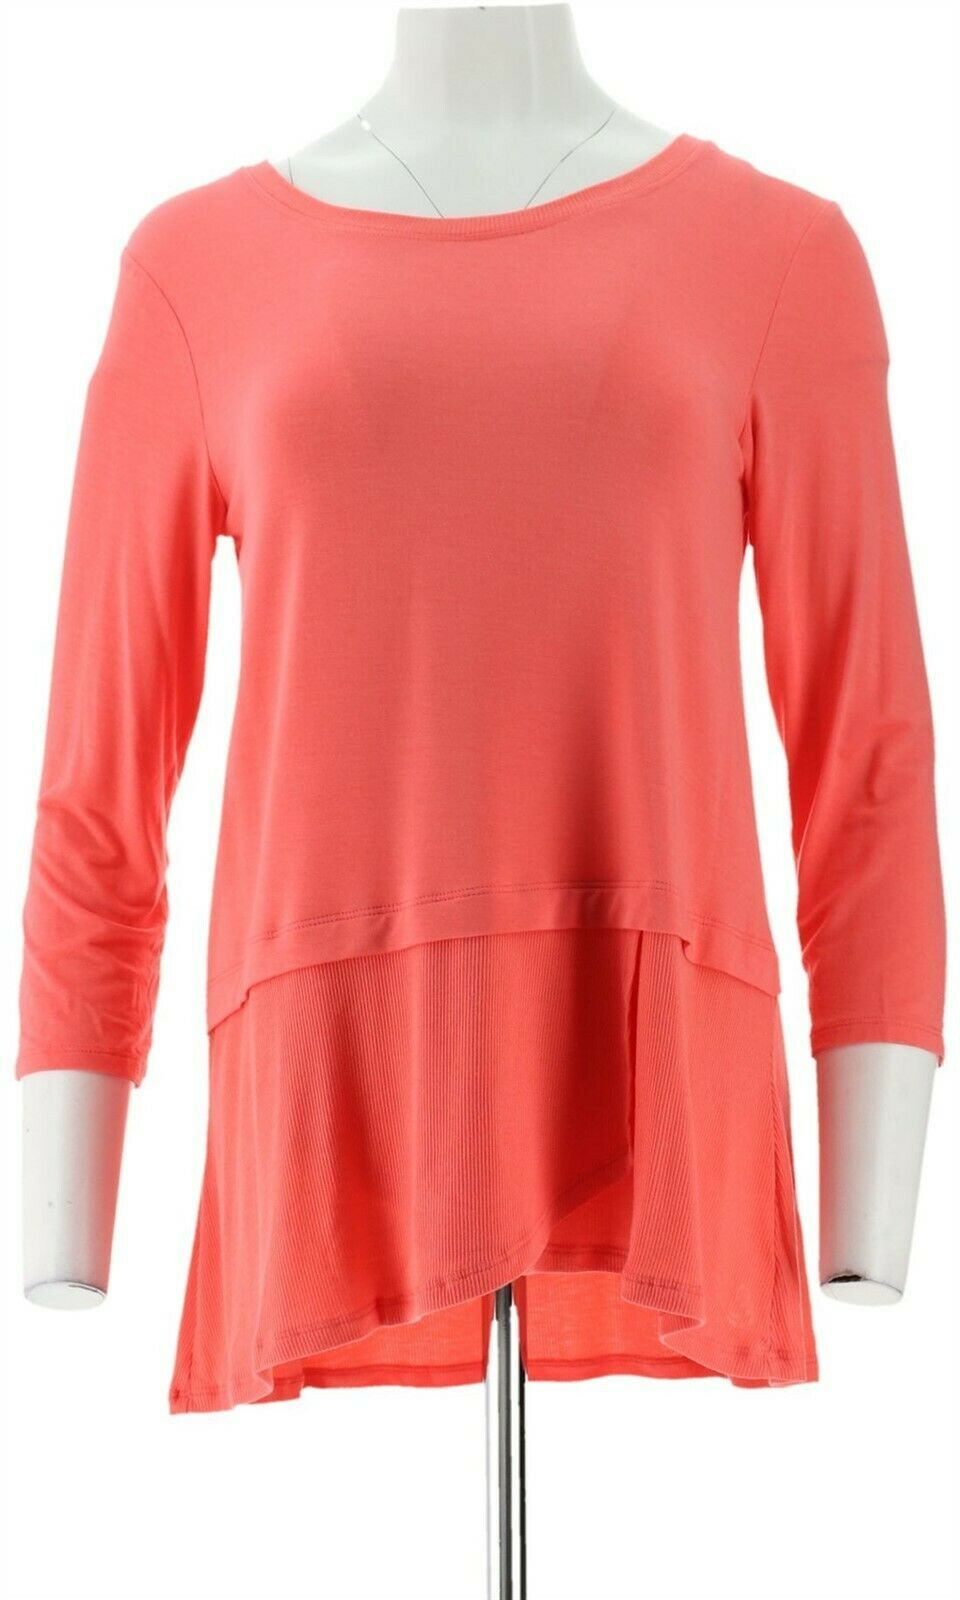 Primary image for Cuddl Duds Softwear Stretch 3/4 Slv Peplum Top Coral Glow XS NEW A346817